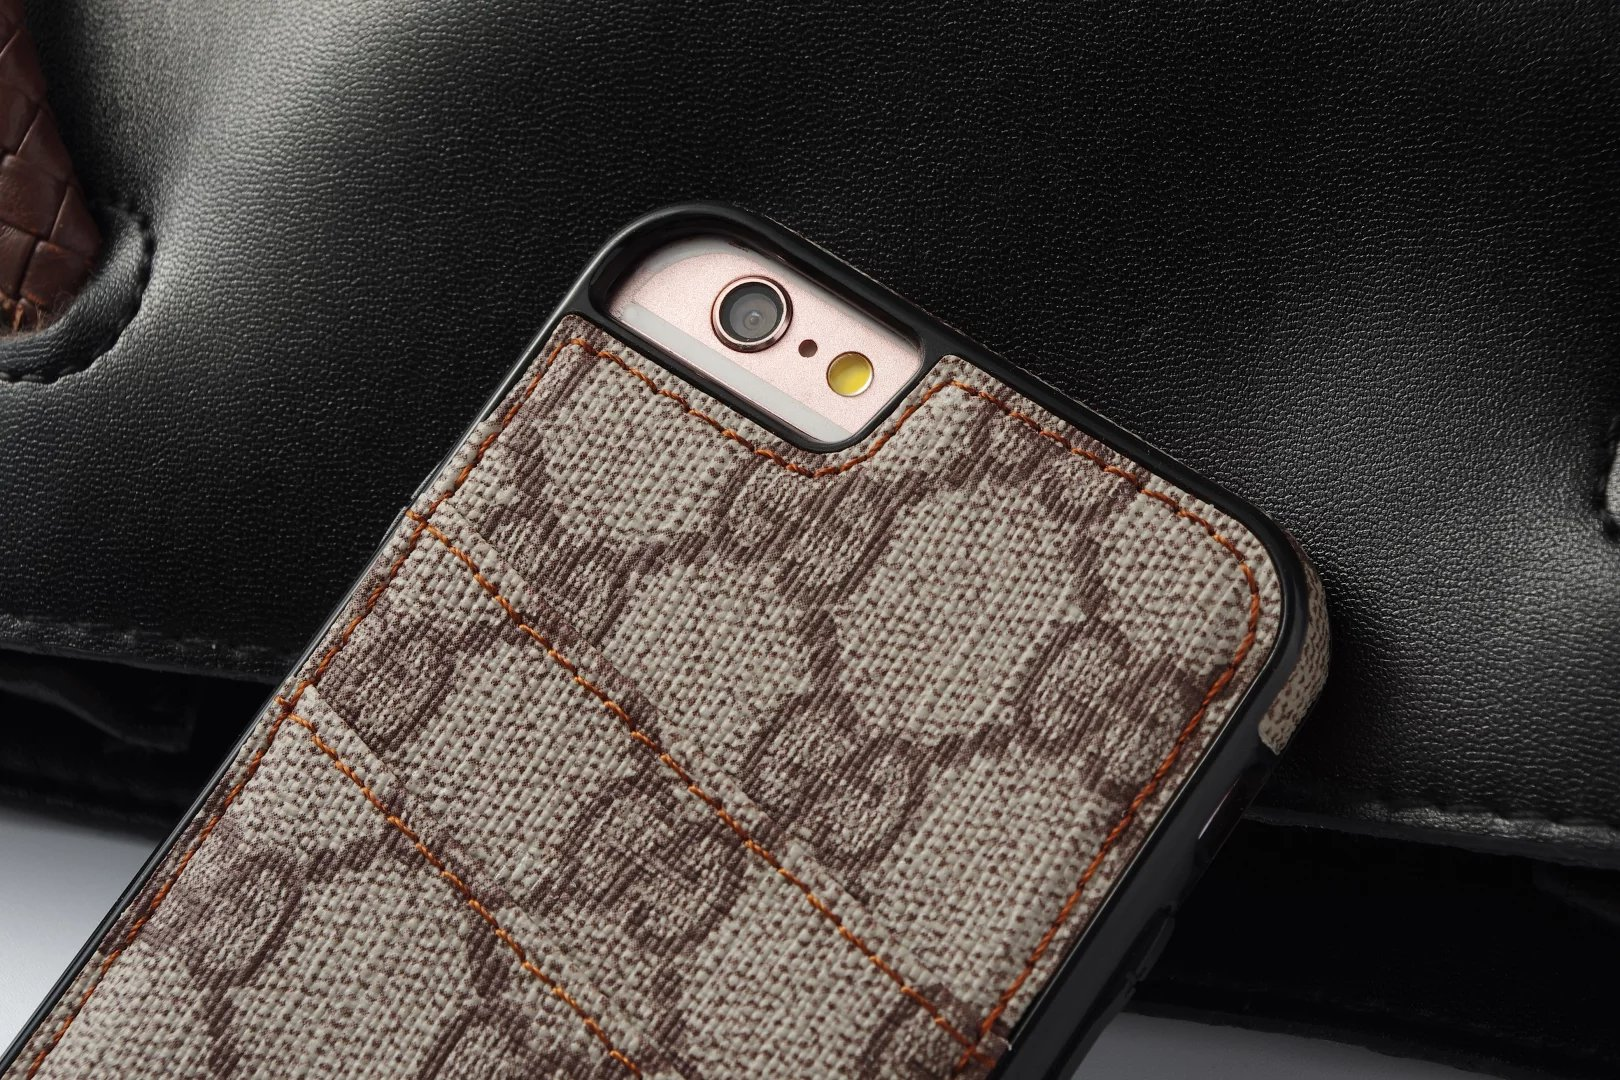 iphone 6 6 case designer cases iphone 6 fashion iphone6 case print iphone case new apple 6 iphone iphone case display life proof case iphone 6 skin case cases for phones